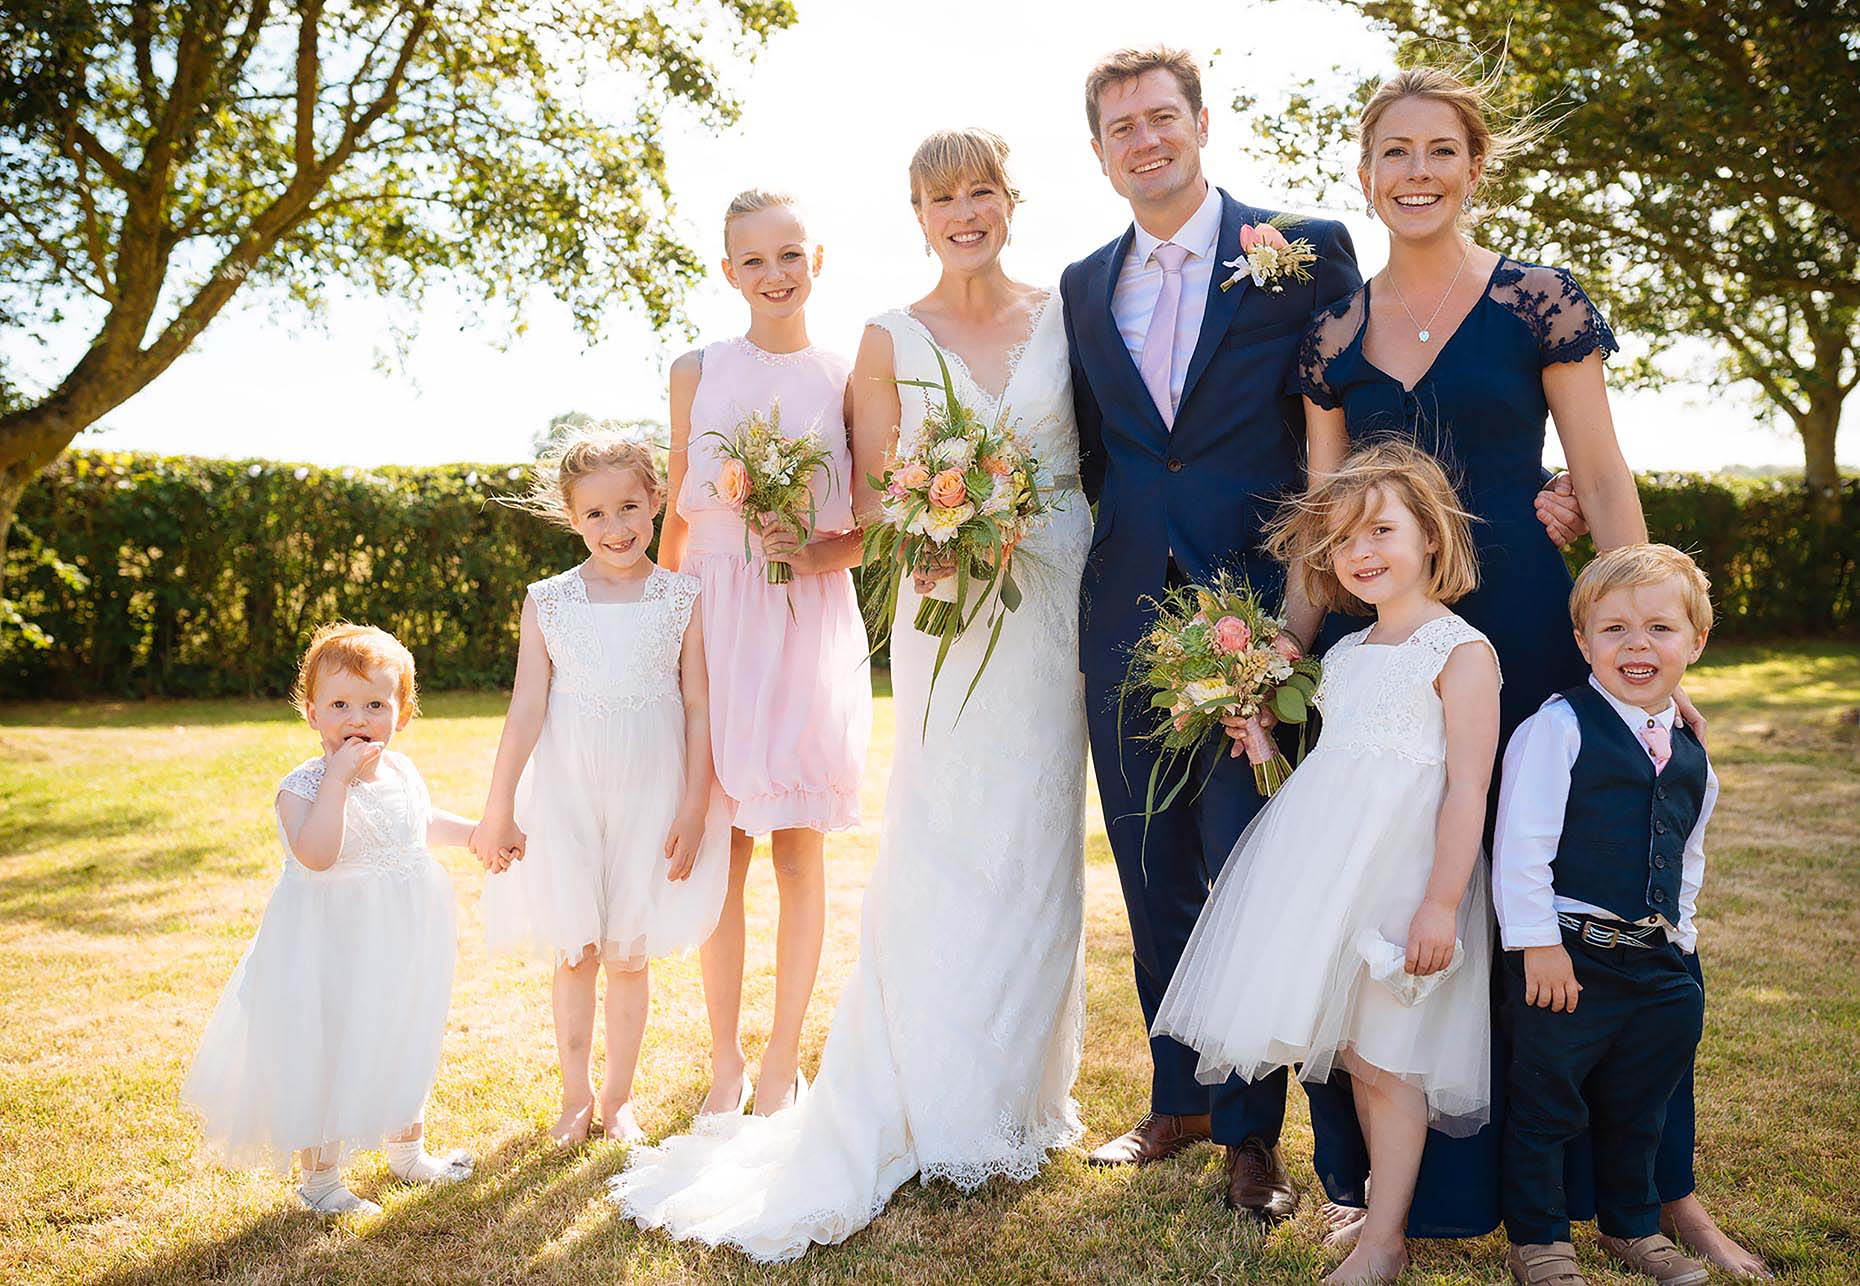 lucy-dorset-wedding-family-group-photograph-37